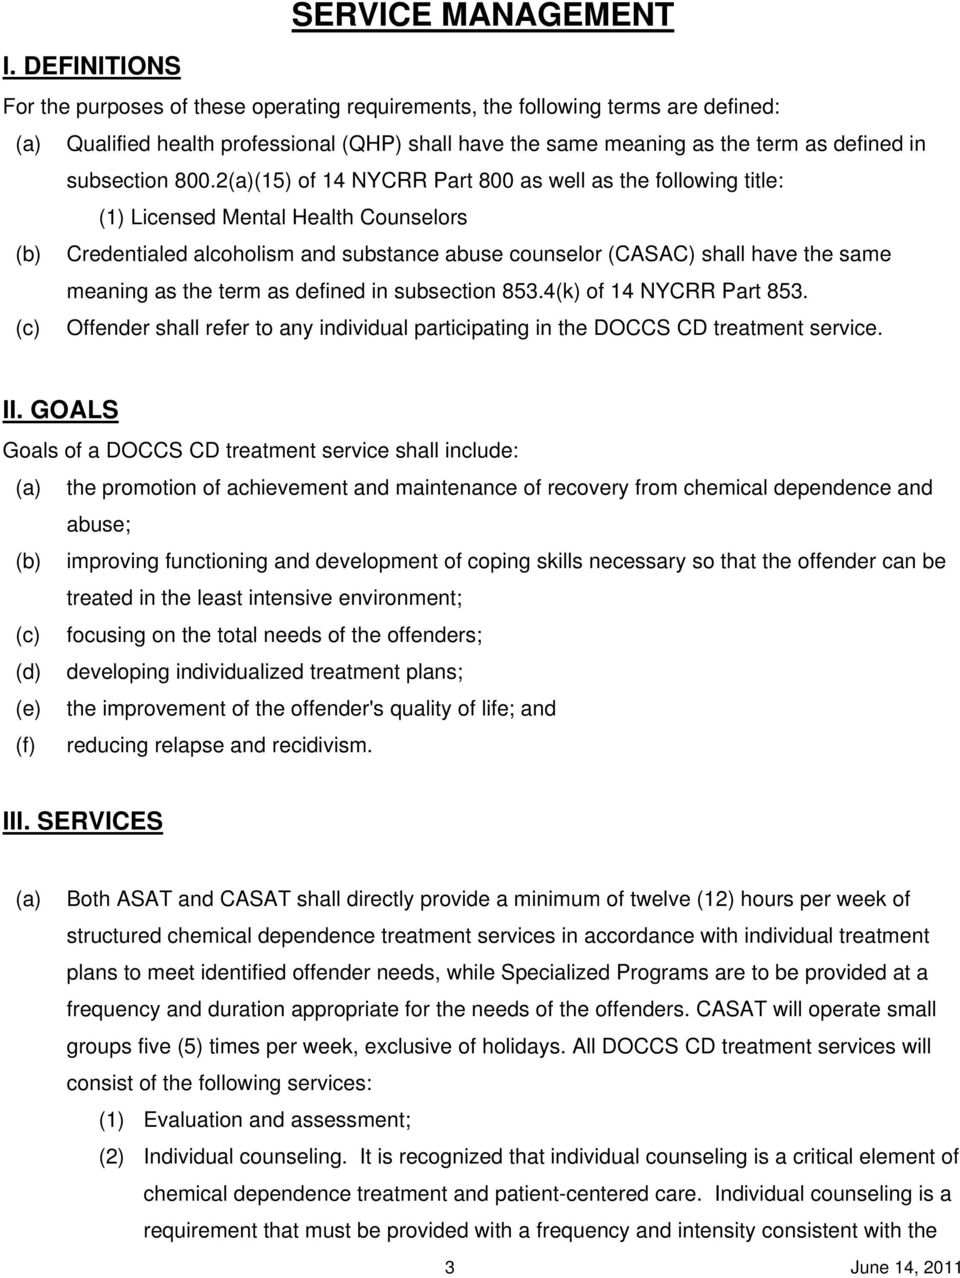 800.2(a)(15) of 14 NYCRR Part 800 as well as the following title: (1) Licensed Mental Health Counselors (b) Credentialed alcoholism and substance abuse counselor (CASAC) shall have the same meaning